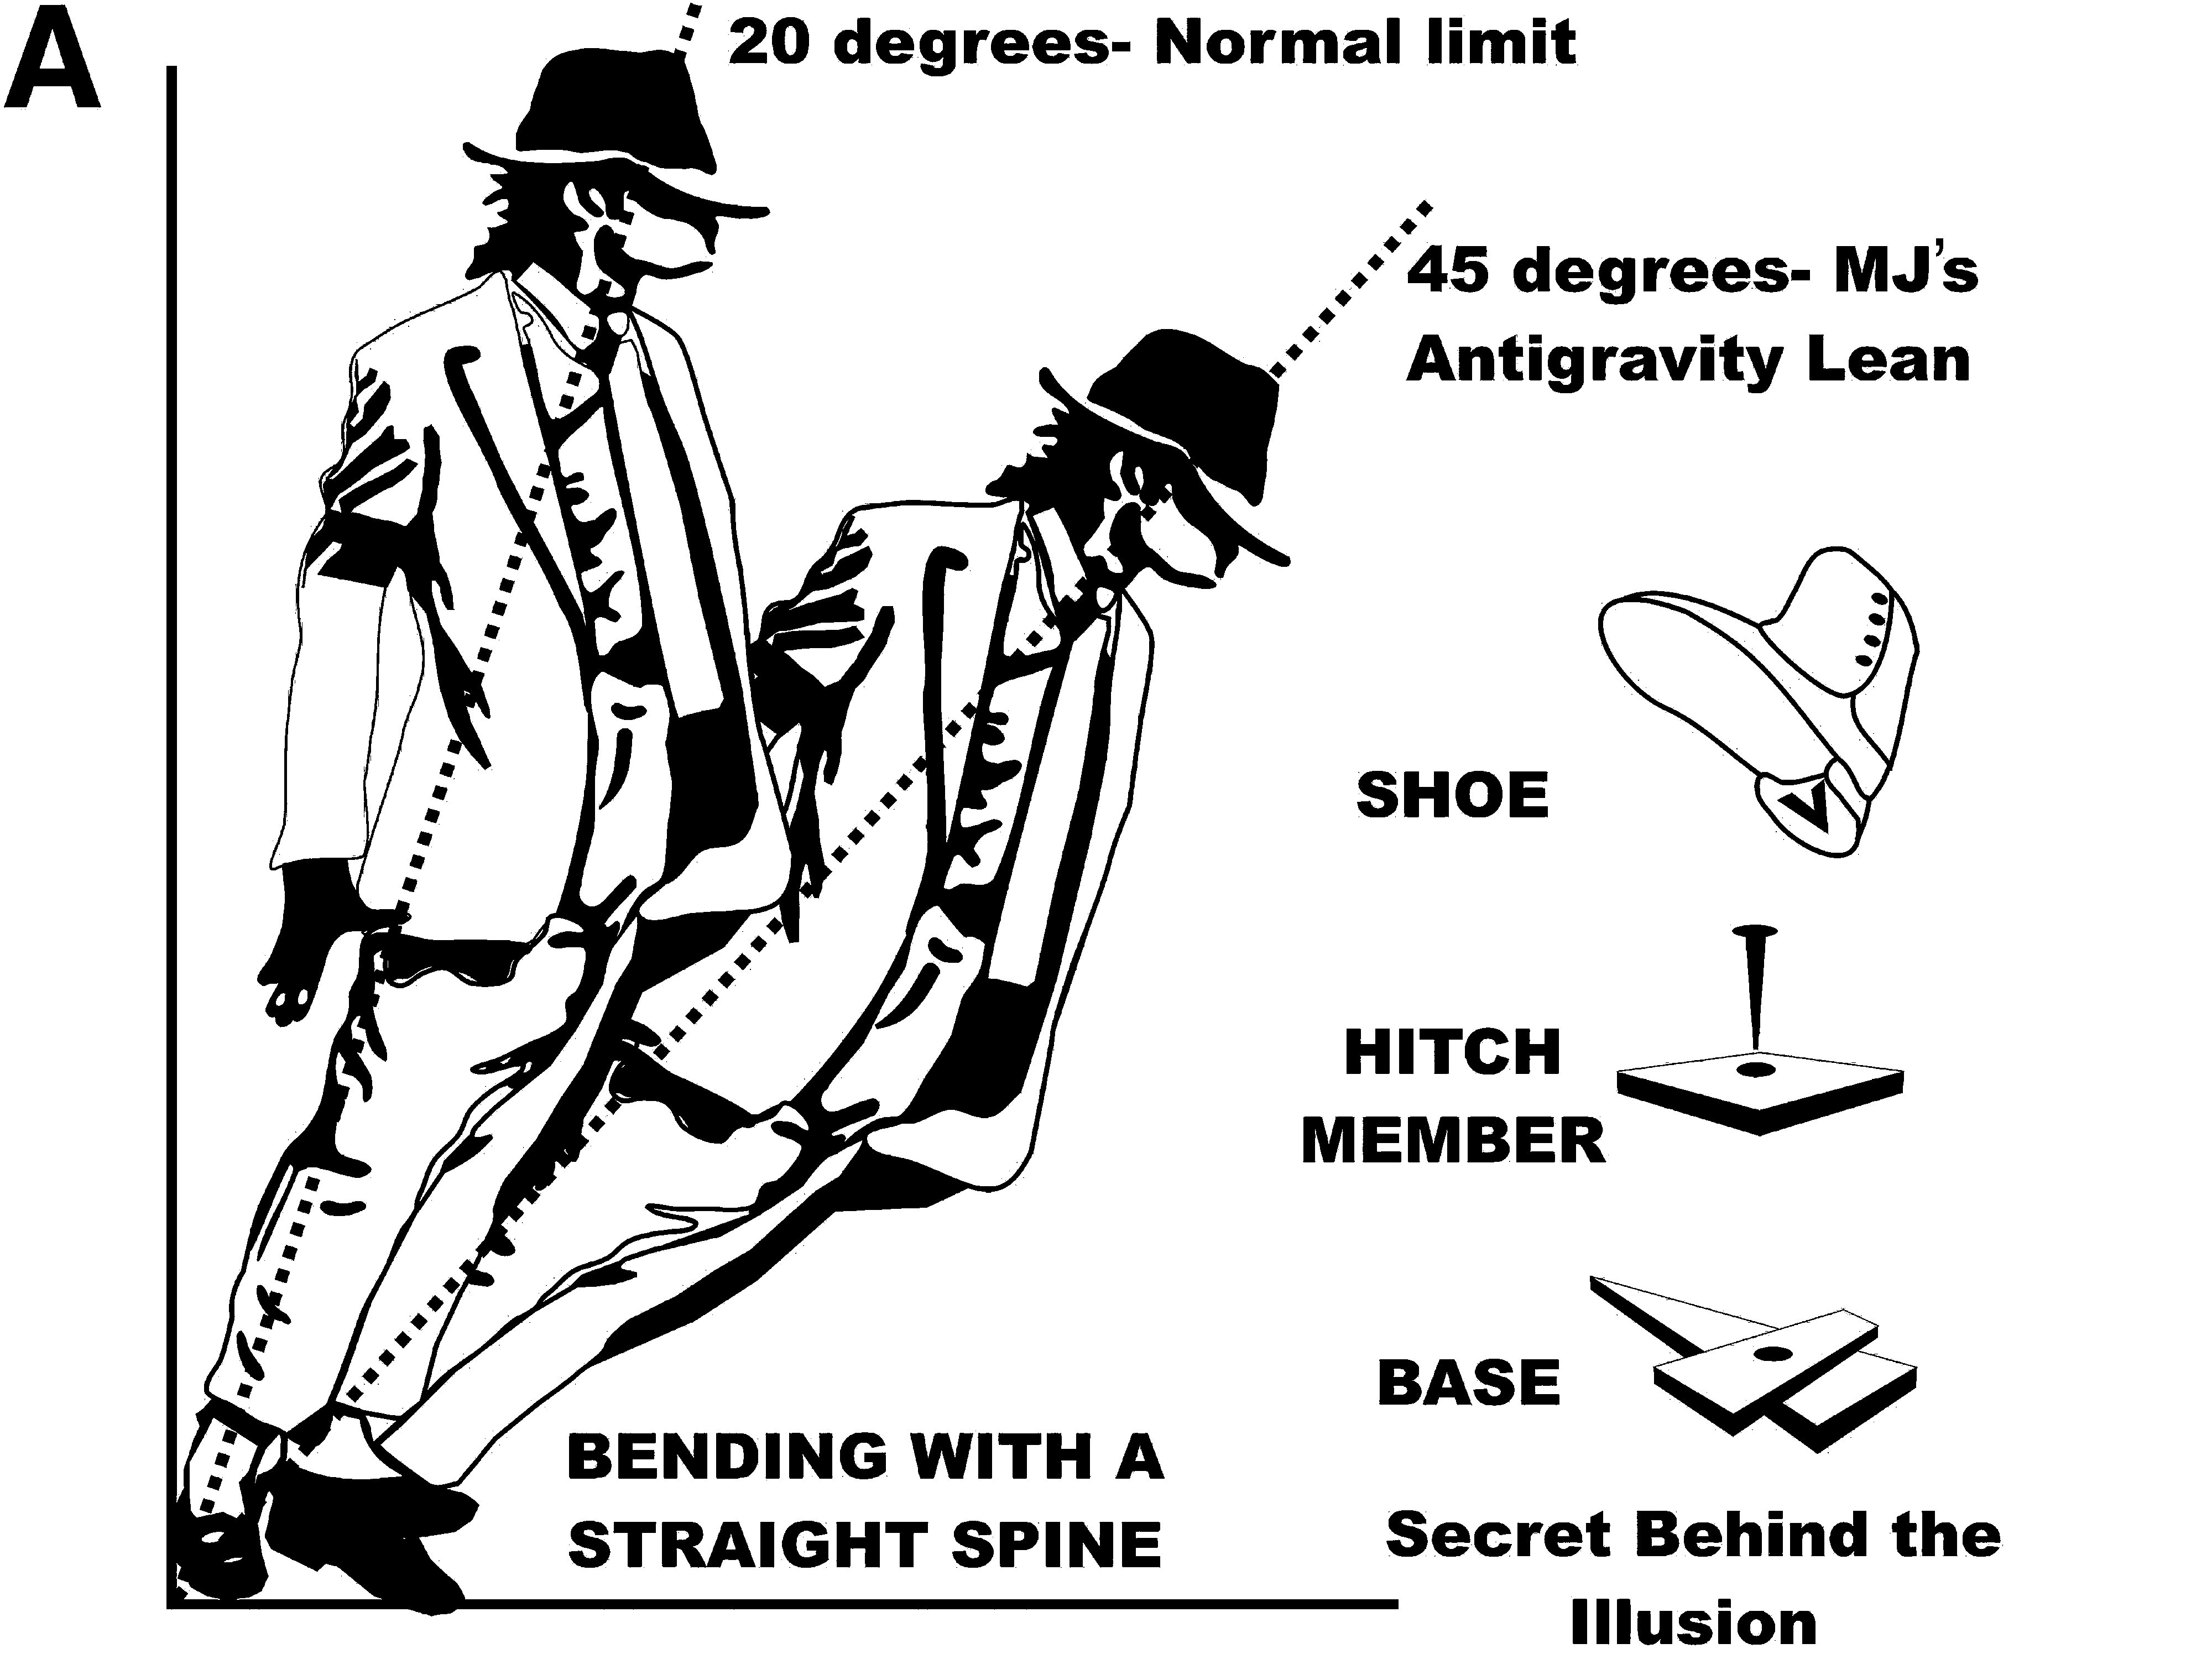 Michael Jackson's 45-degree tilt versus the rest of humanity illustrated, along with Jackson's secret weapon.